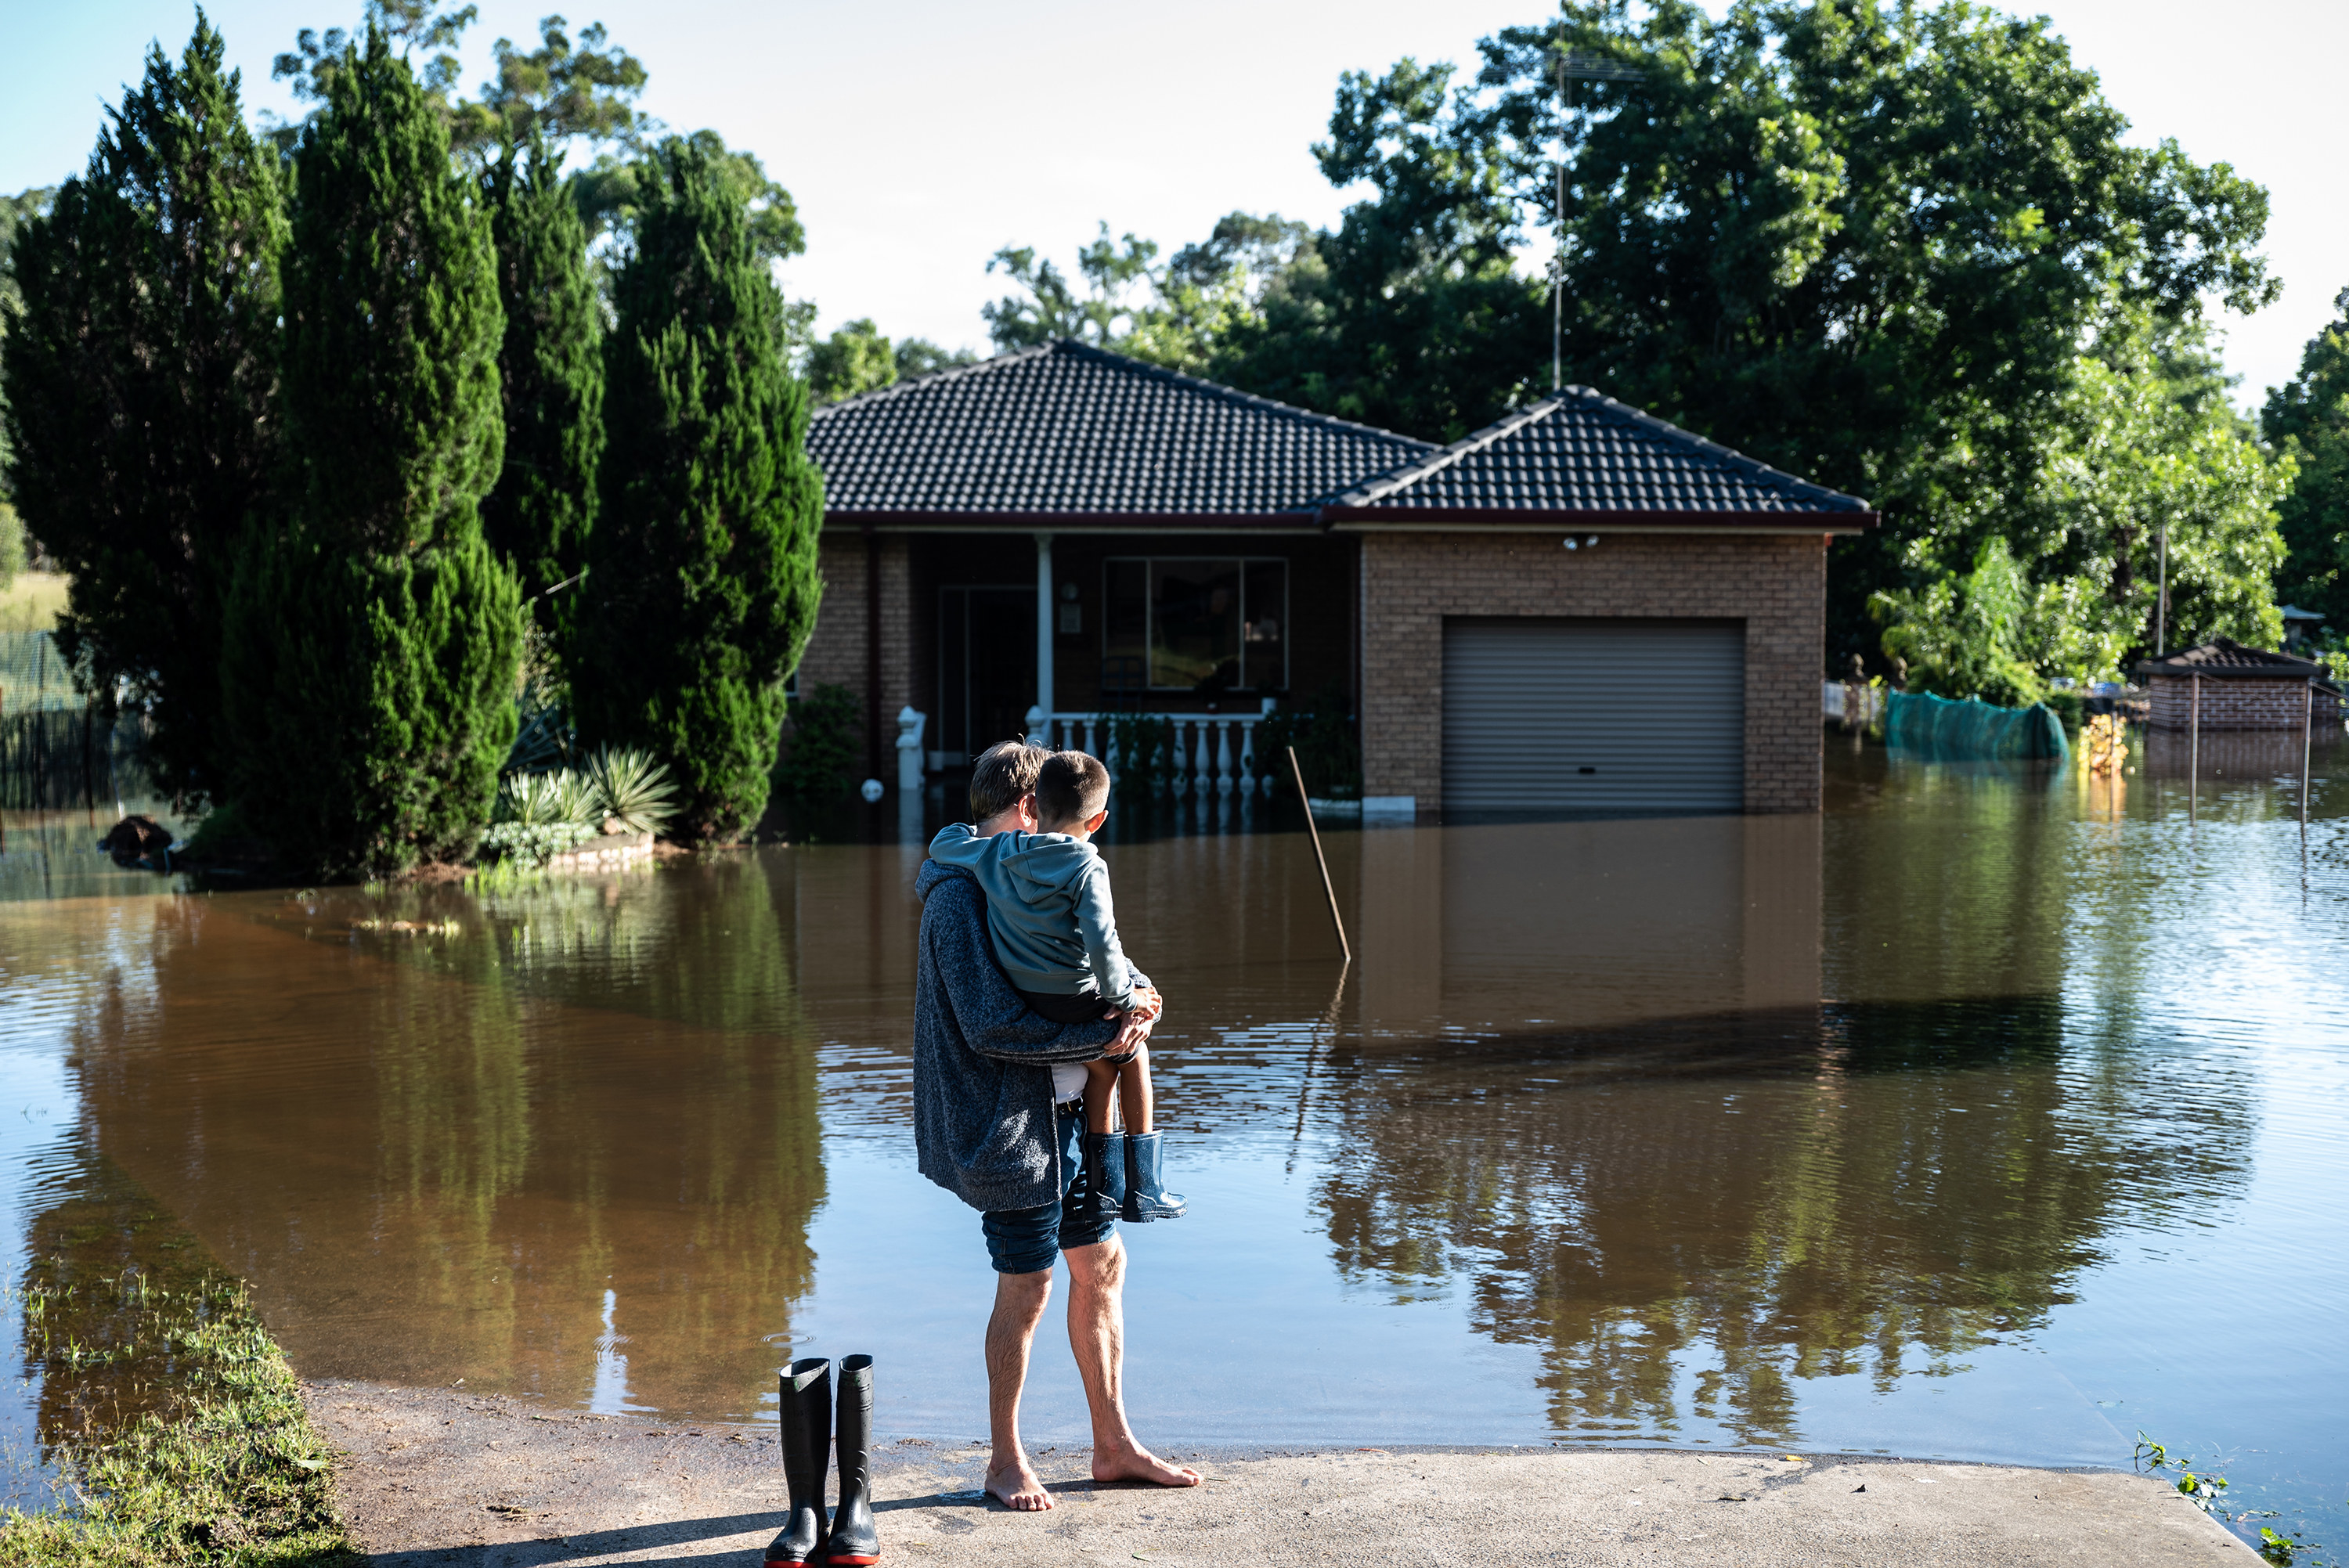 A father and son stand on dry land in front of a flooded home